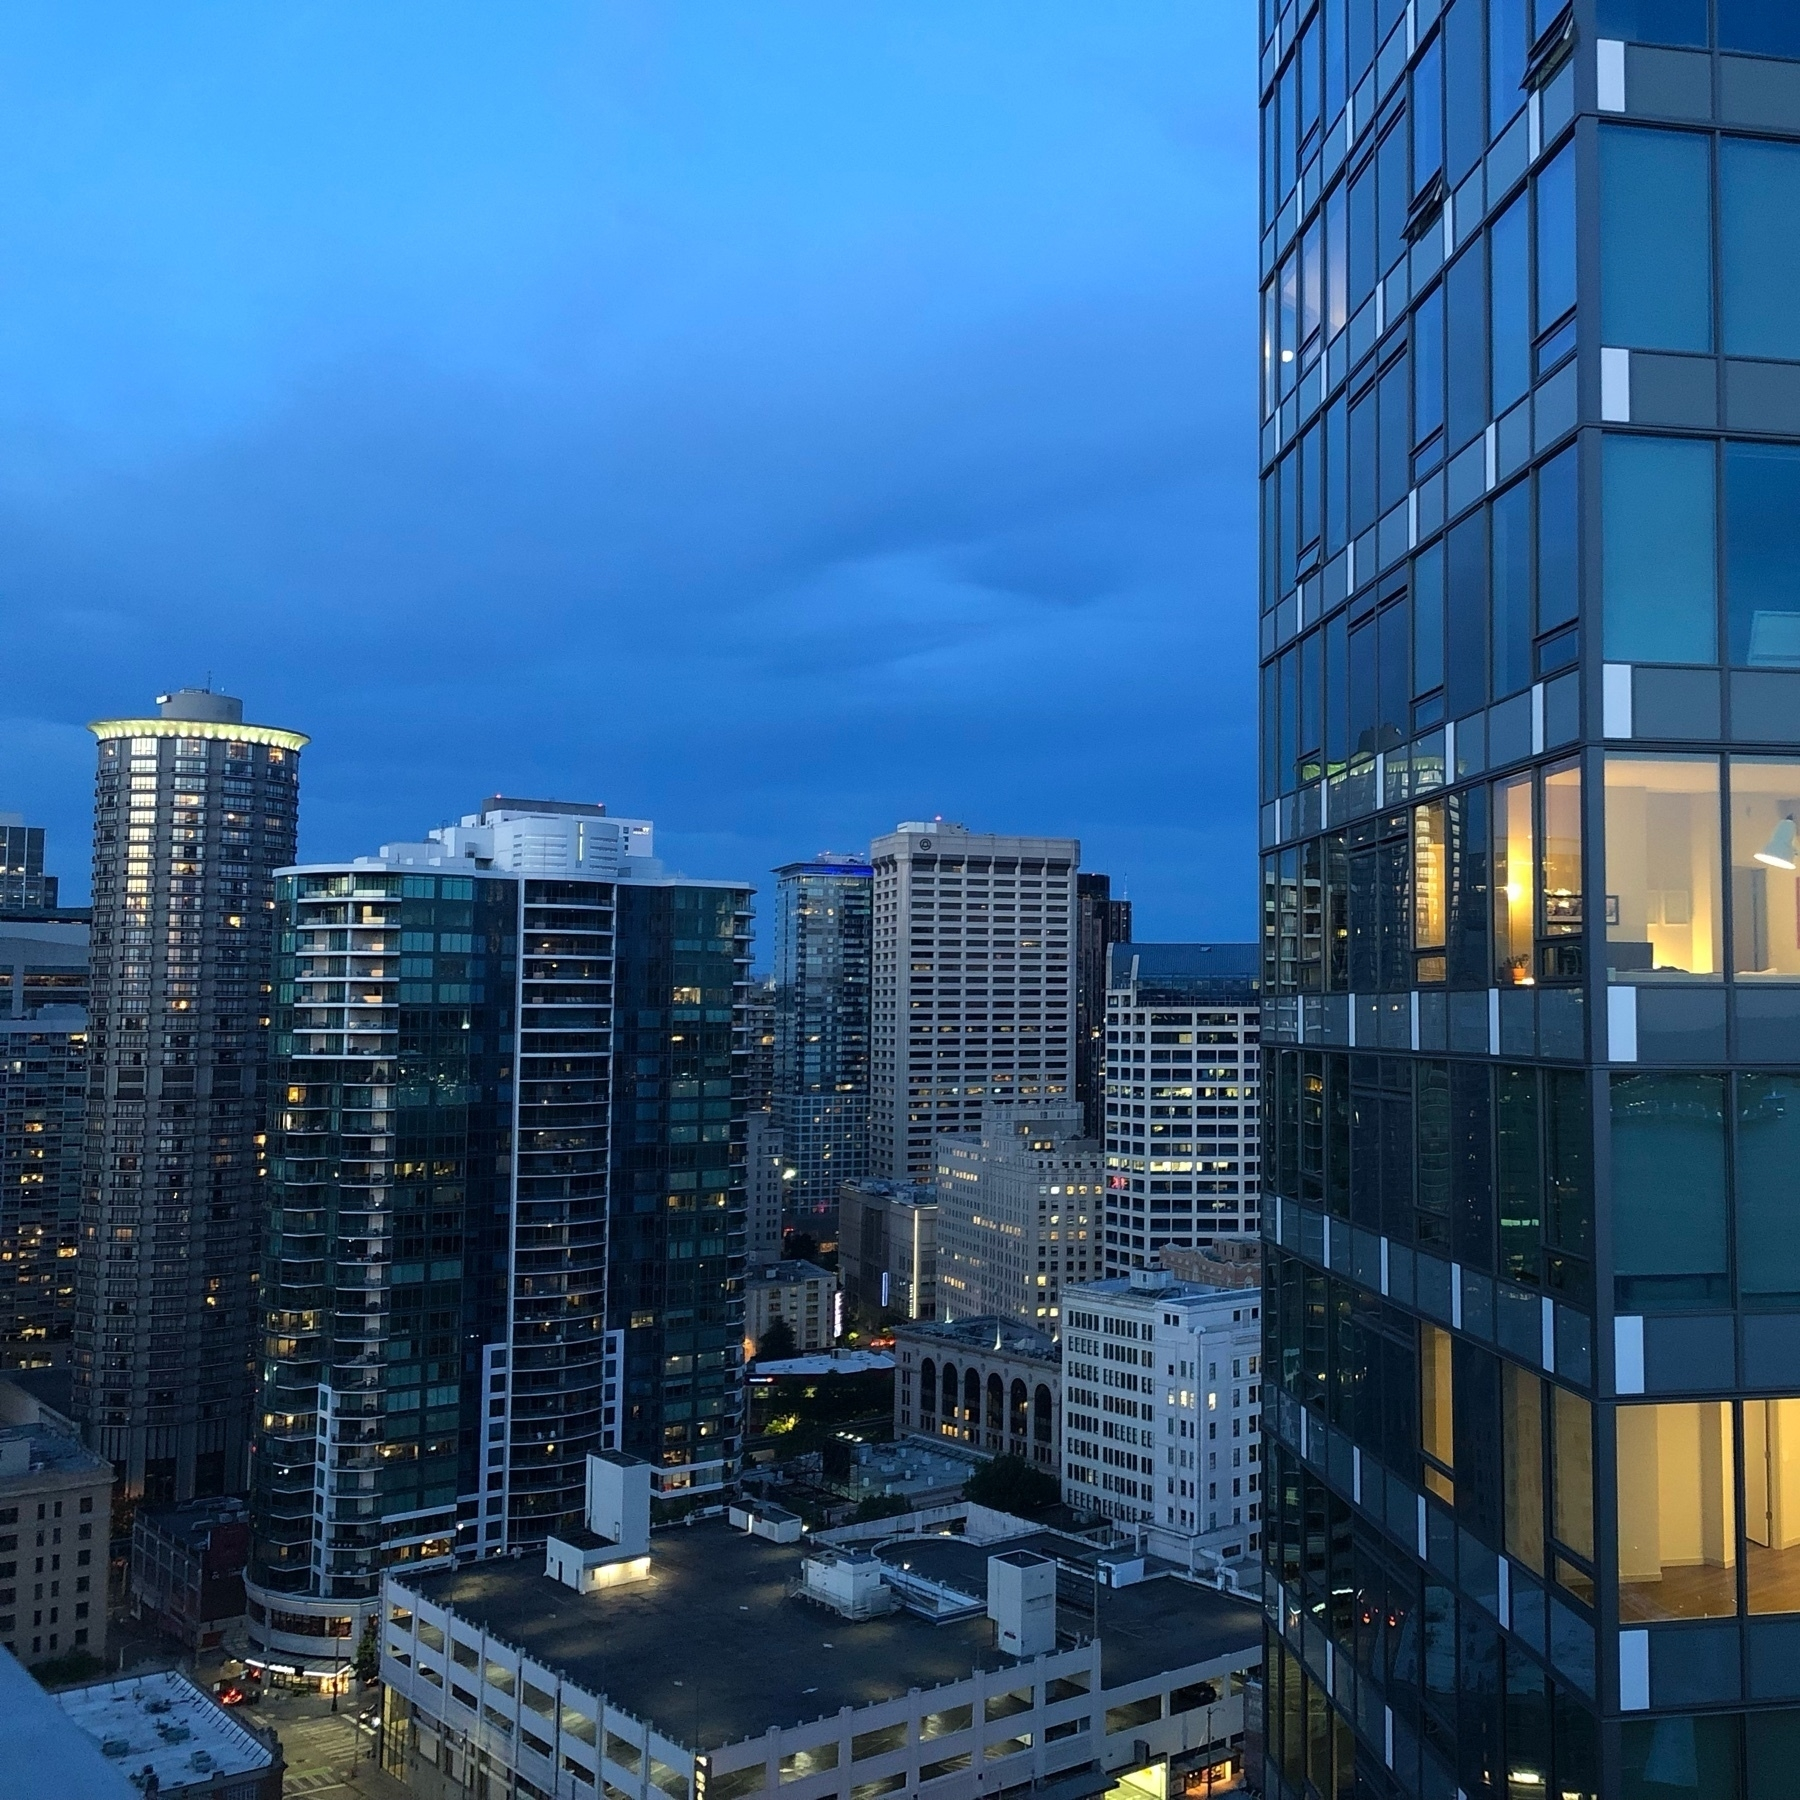 Seattle at twilight in a thousand shades of blue. A cityscape.